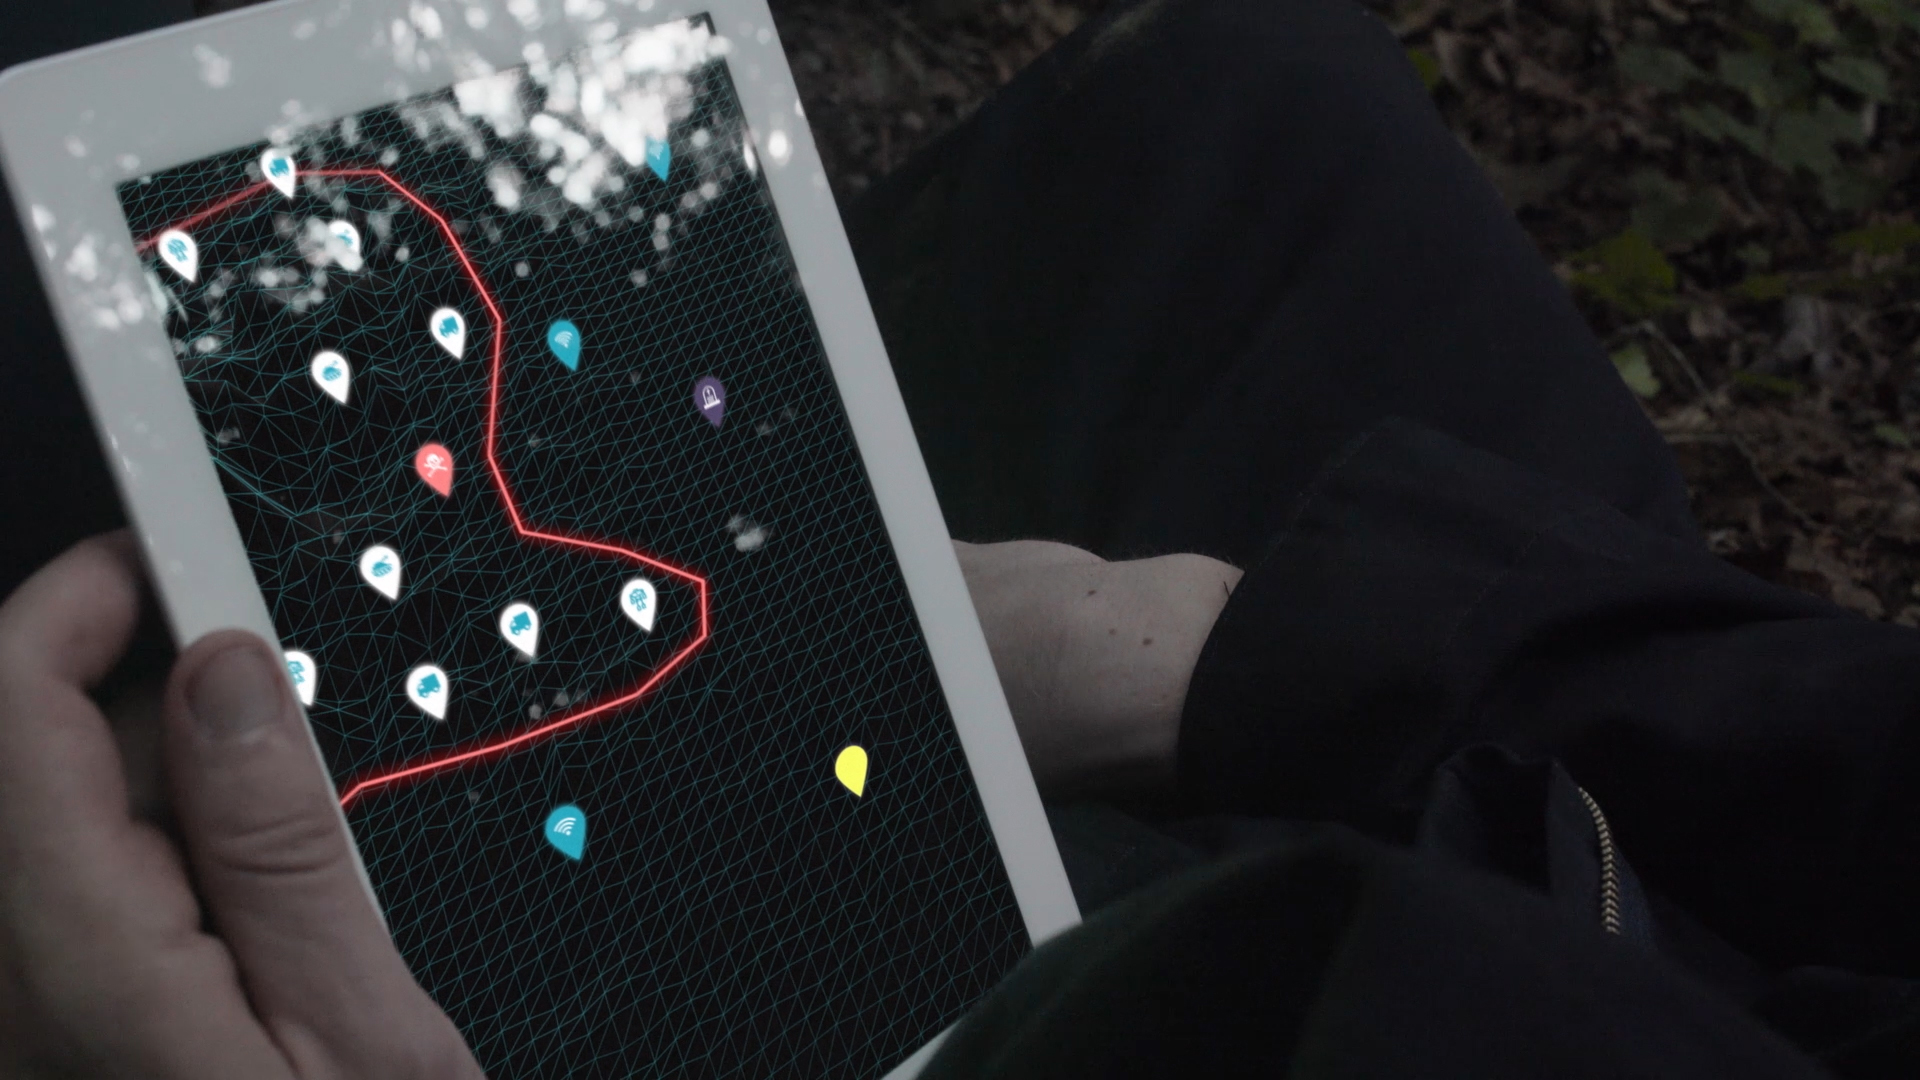 From the sci-fi short film Fringe Territory: Salvage Mission One. Quinton looks at the tablet